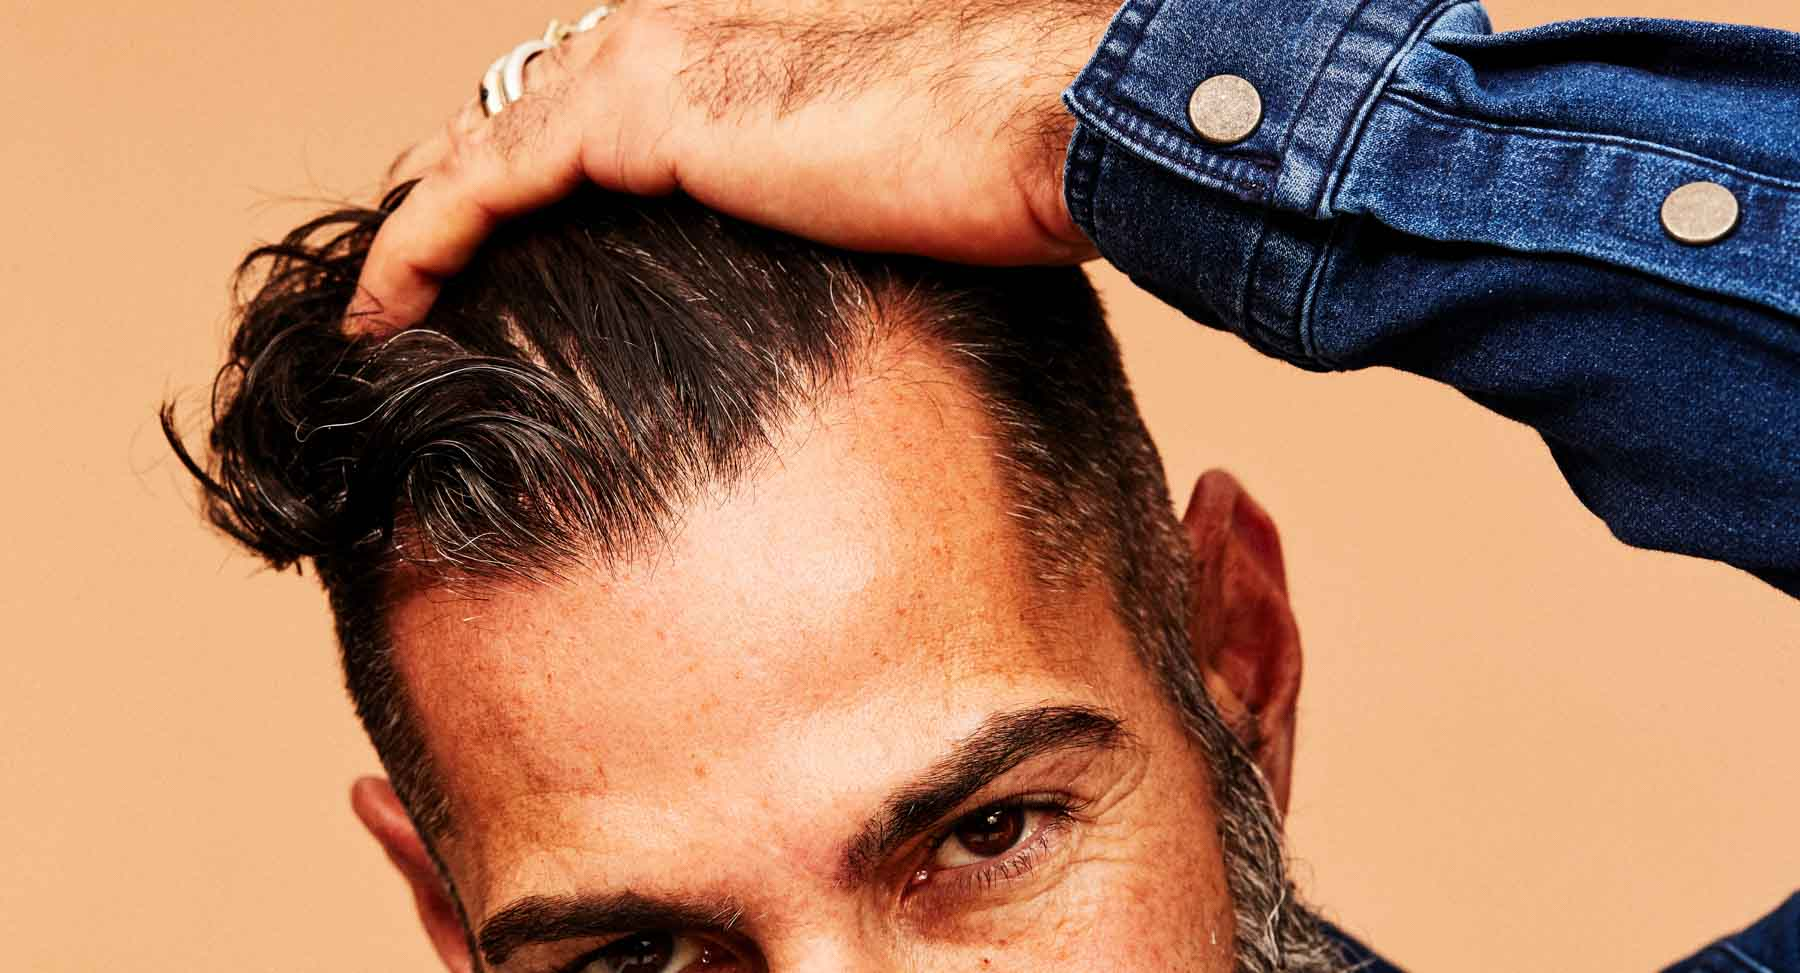 Vitamin D and Hair Loss: What You Need to Know